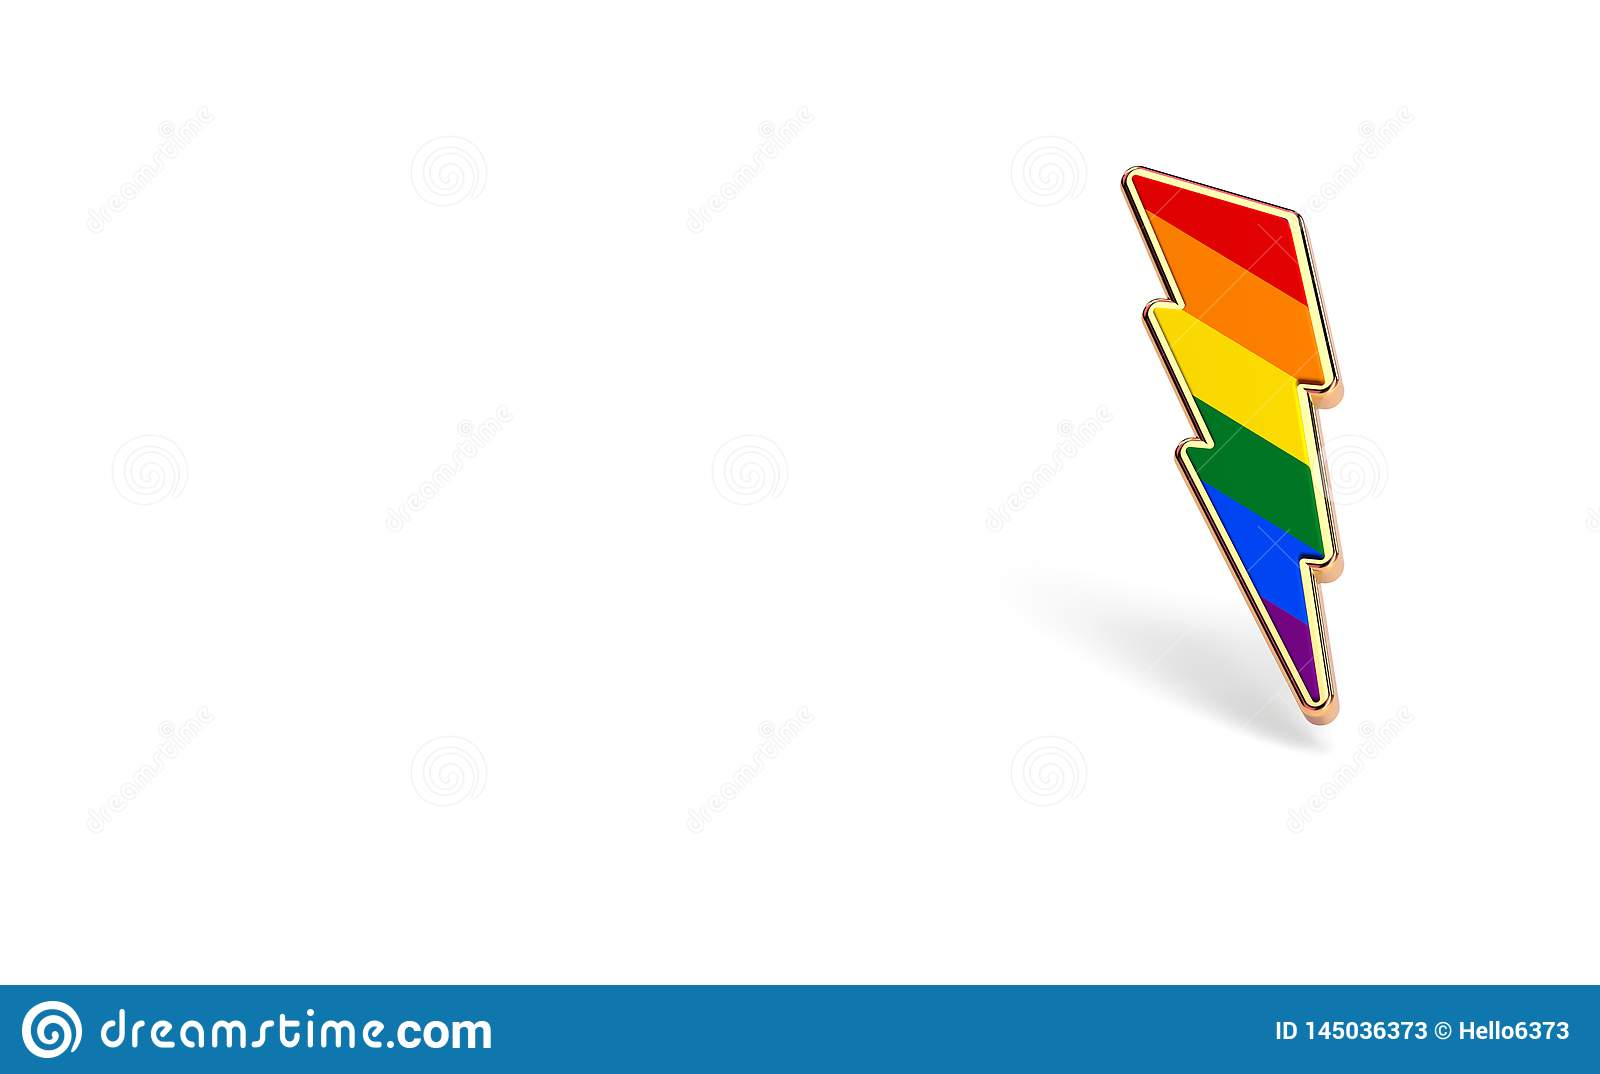 LGBT lightning bolt rainbow pride symbol isolated on white background with copy space on the left side. Gay, Lesbian and sexual